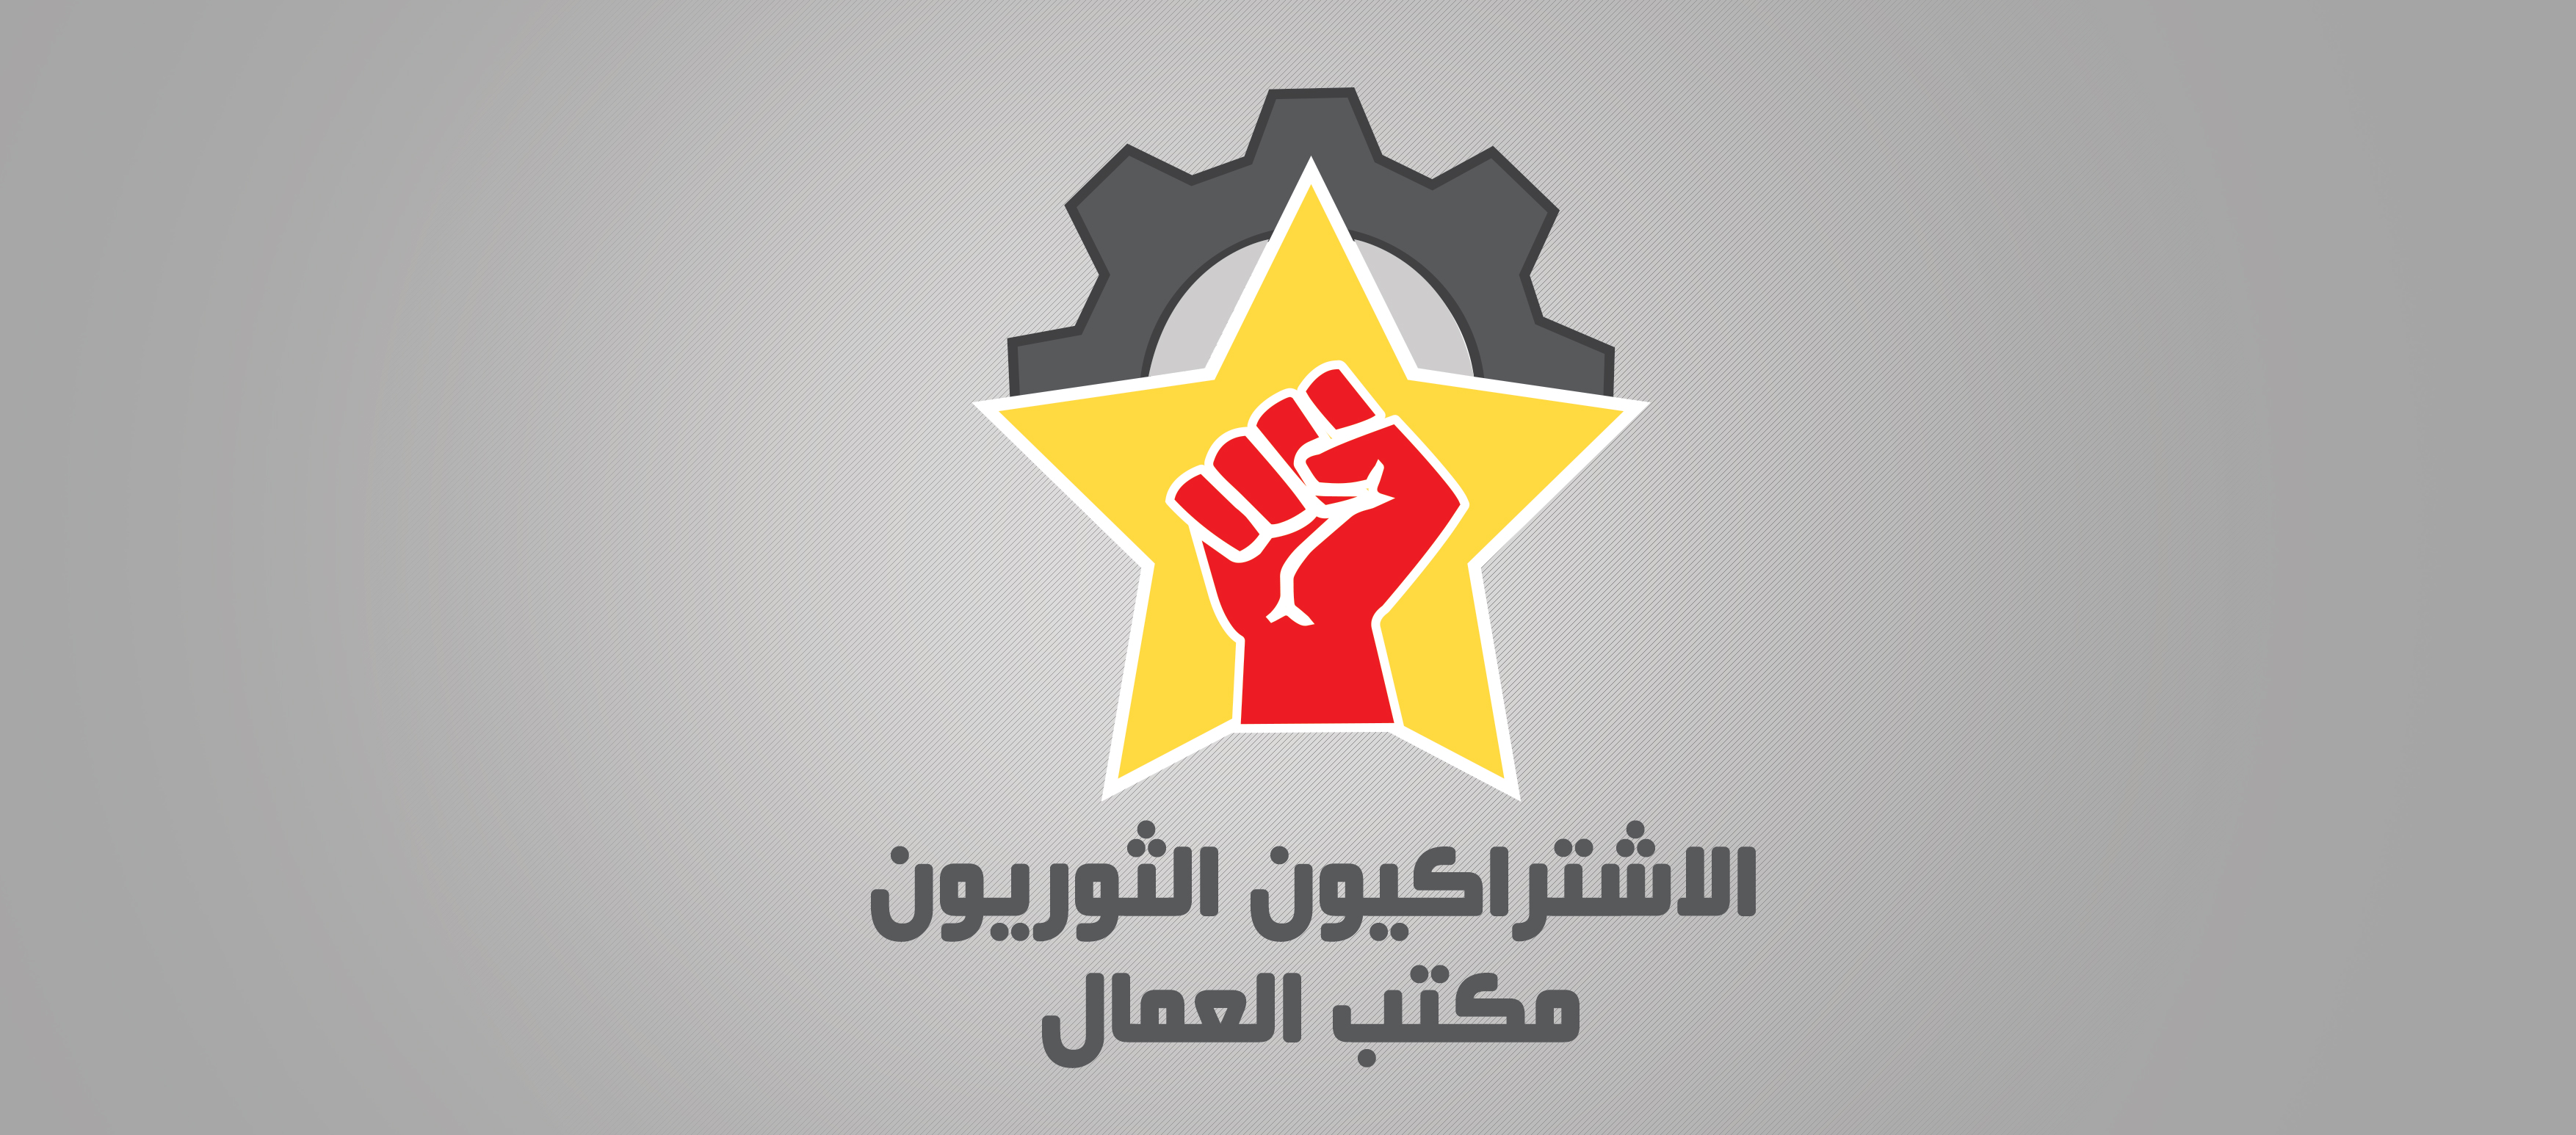 Workers-logo